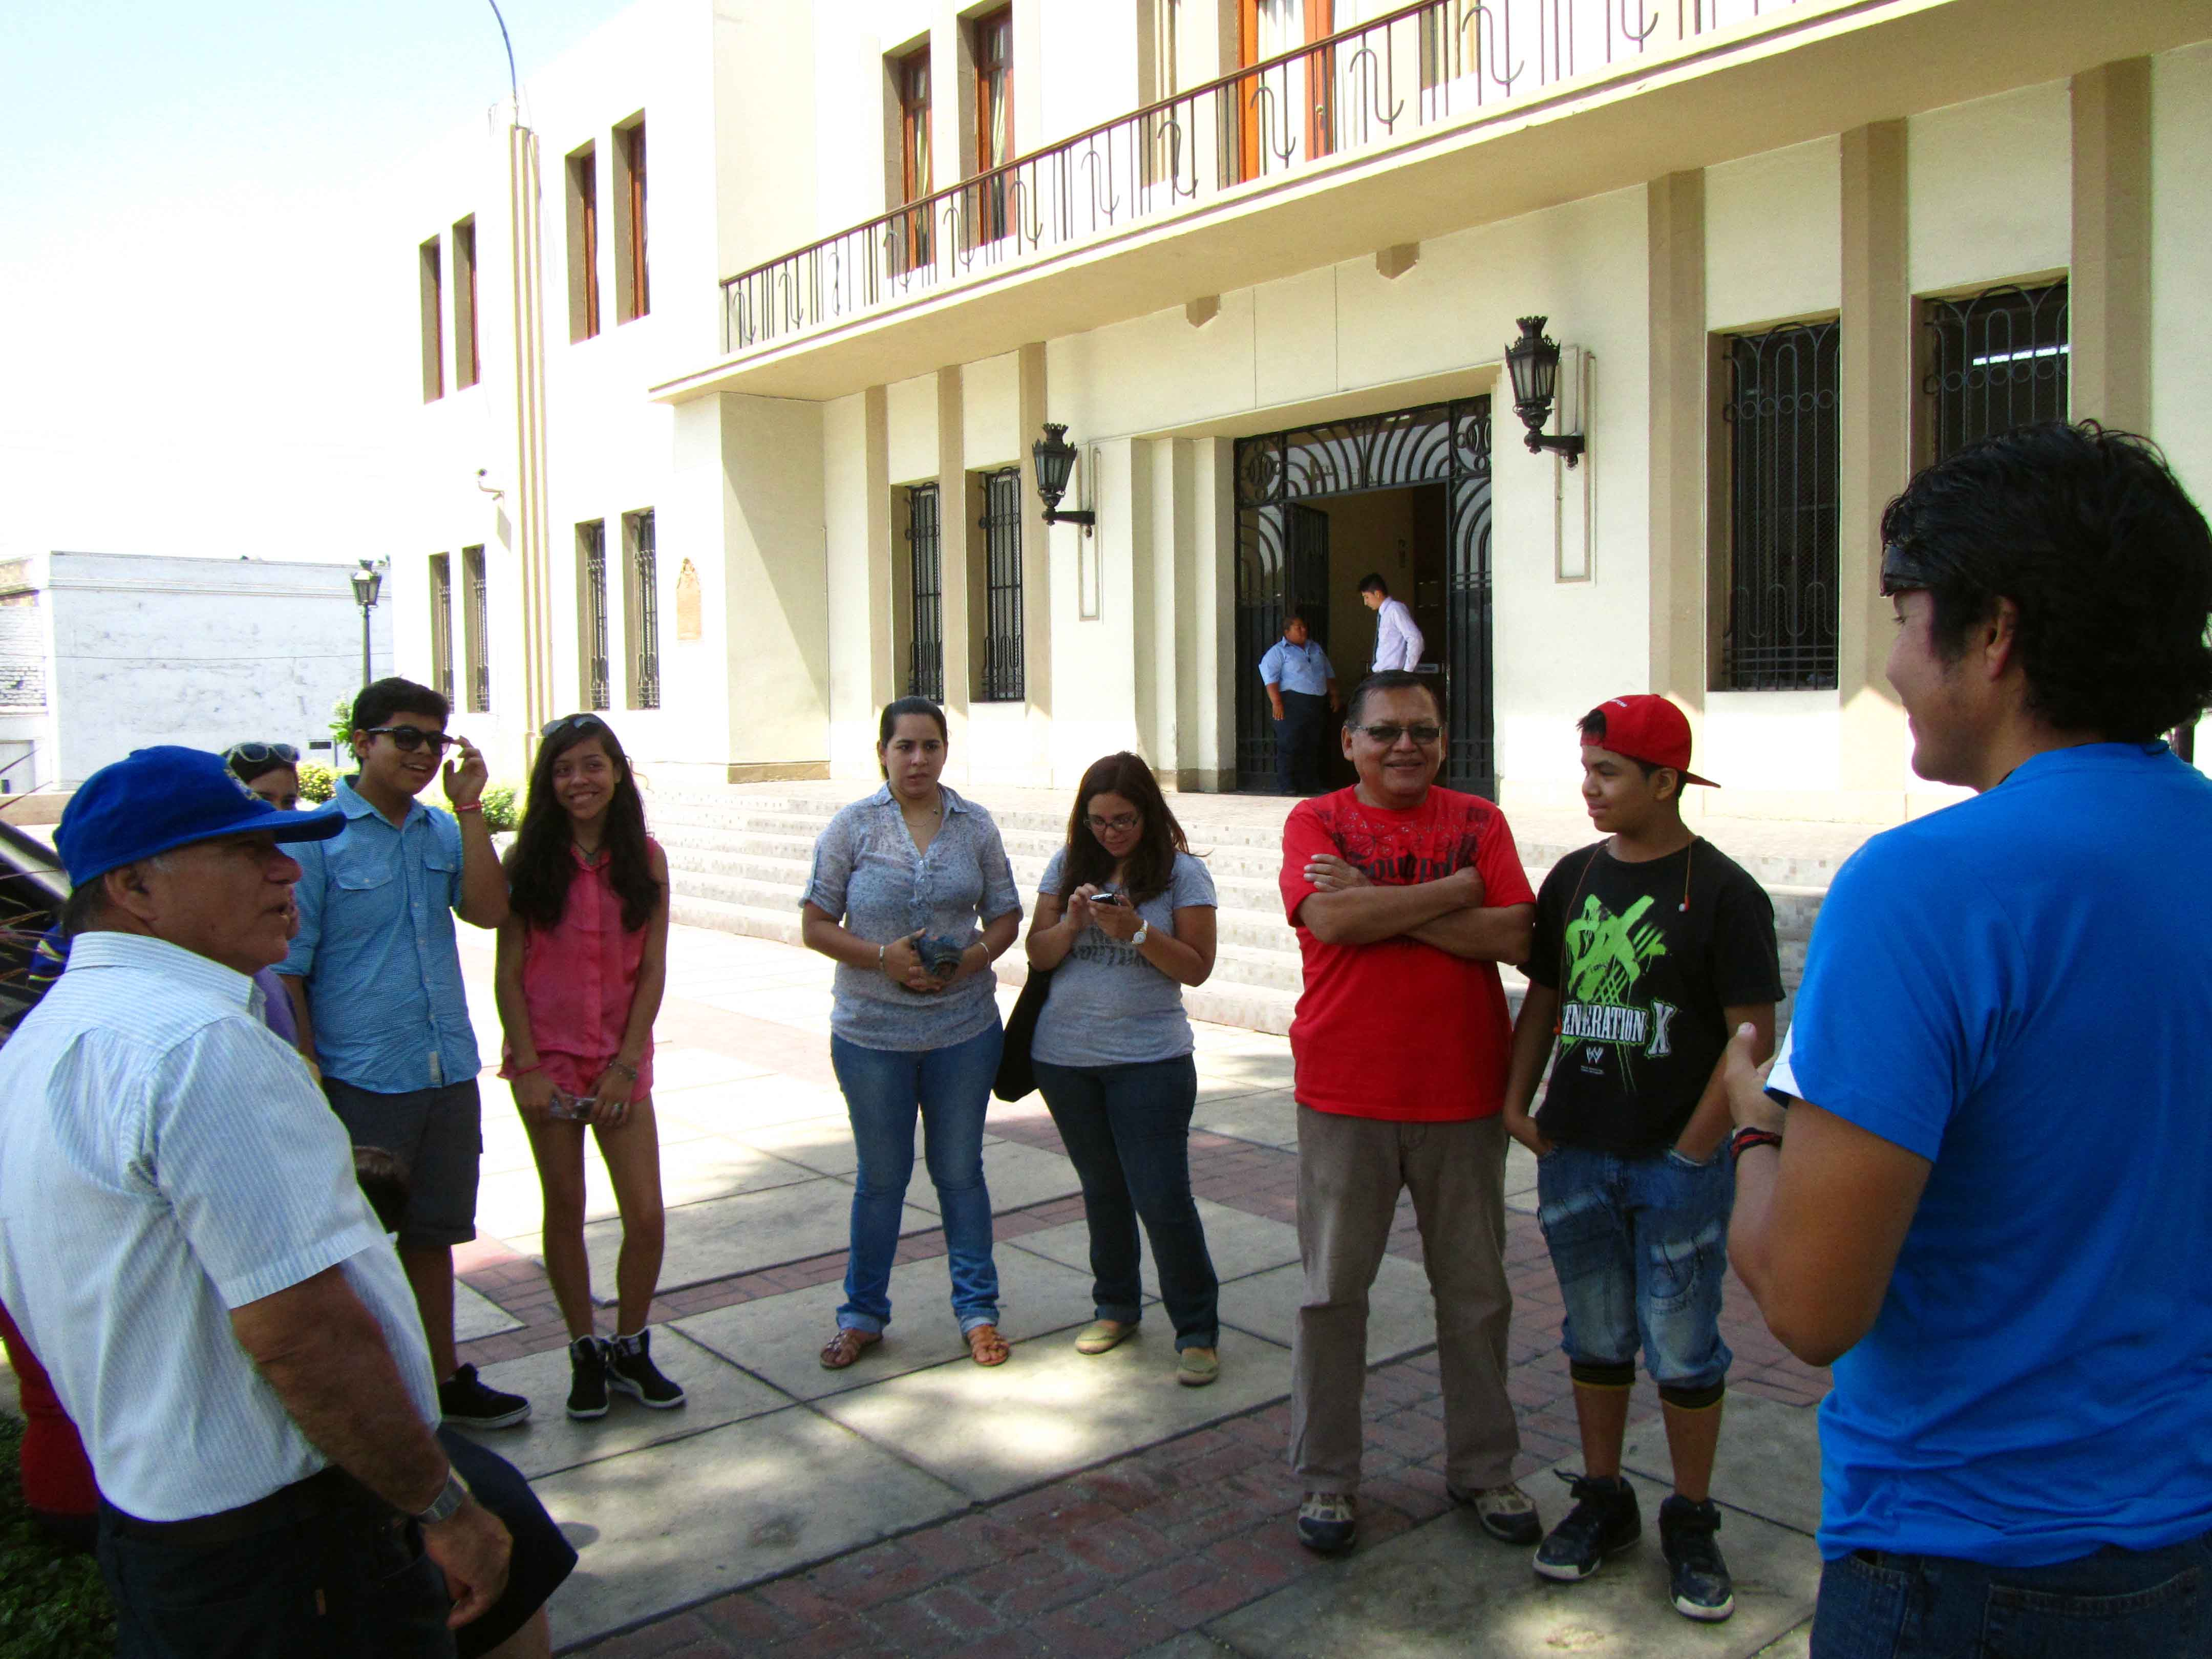 Con nuestro guía antes de iniciar el tour. With our guide before the tour begins. Photo credit, placeOK